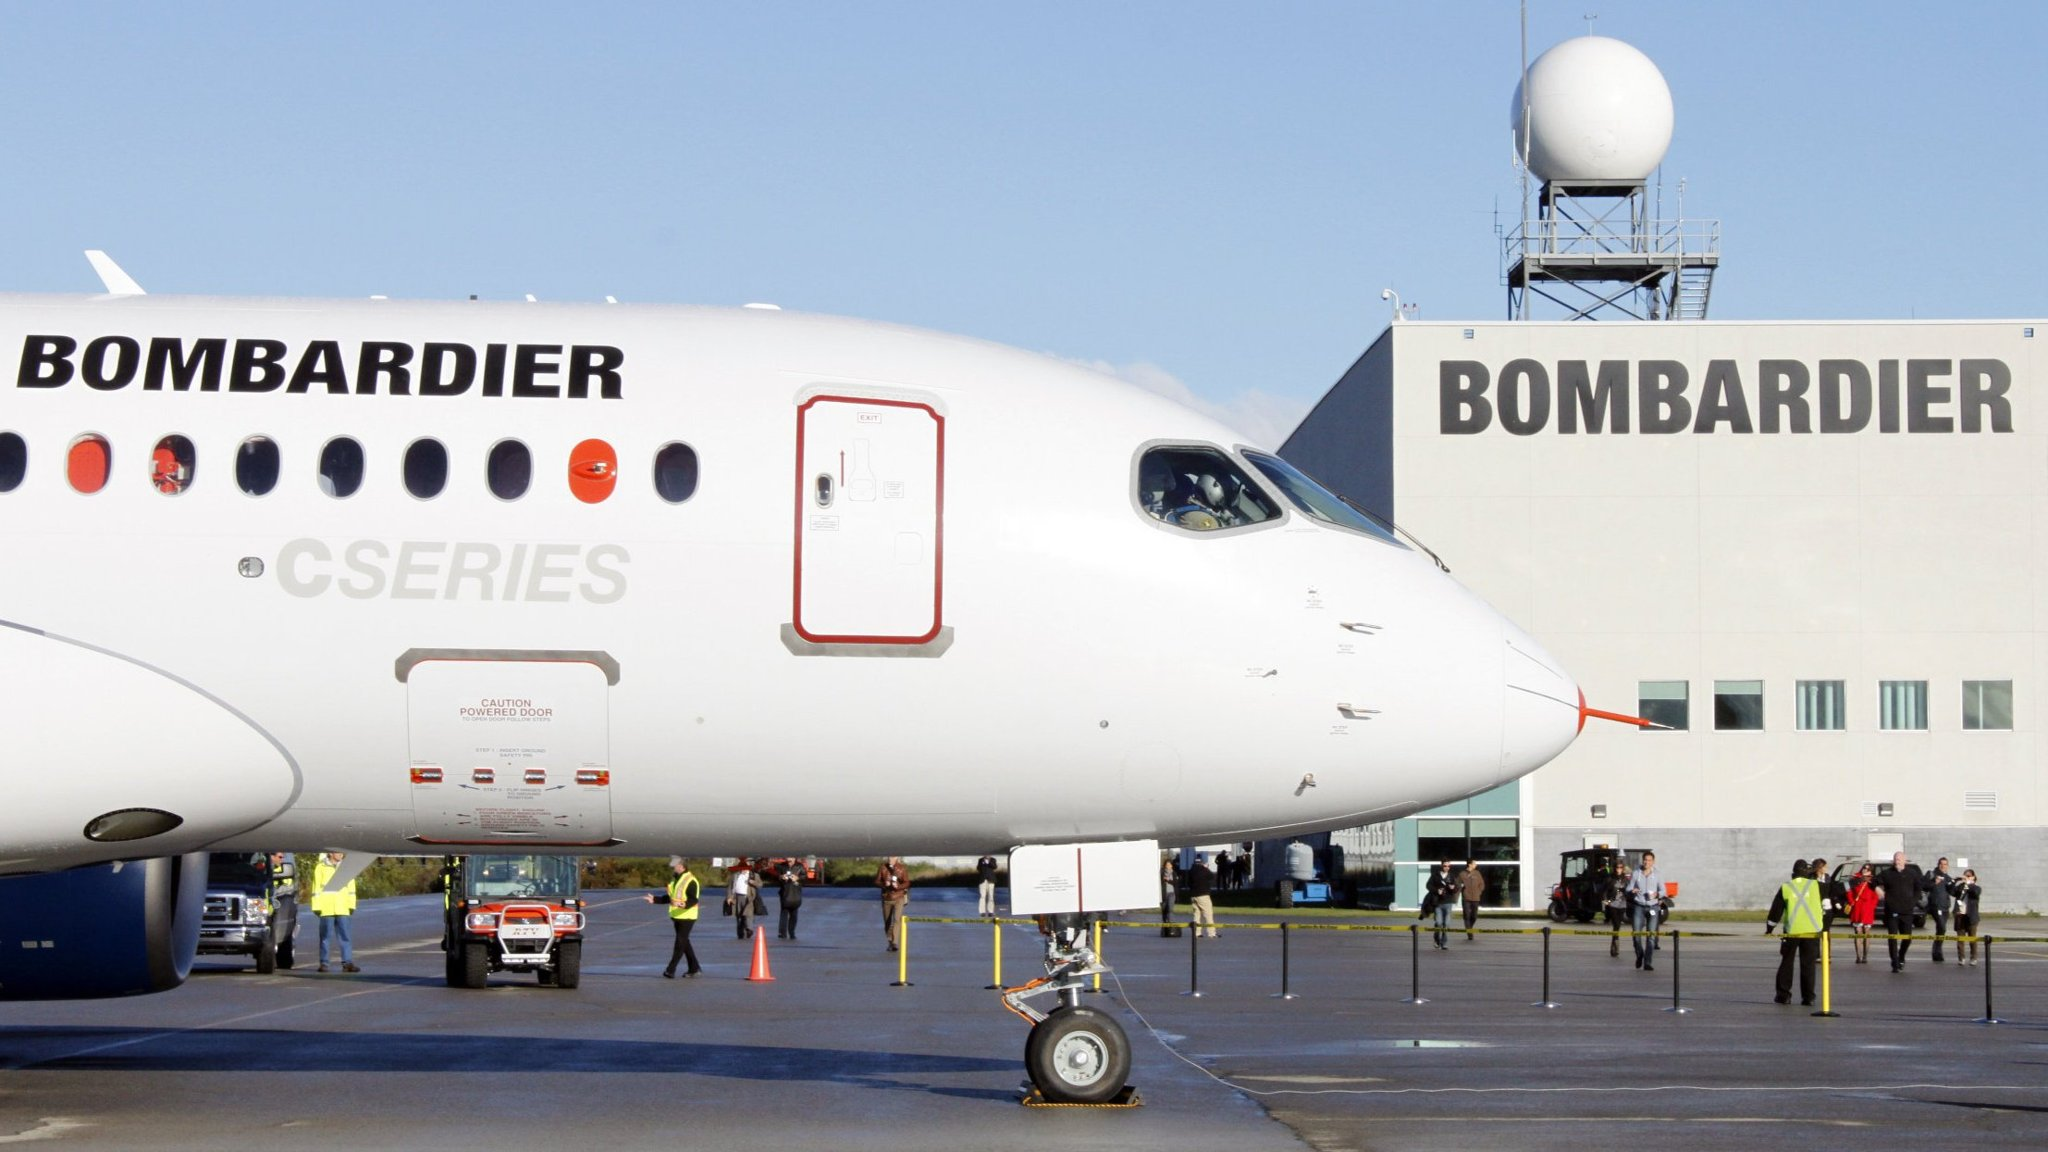 Bombardier wins reprieve in tariffs row with Boeing